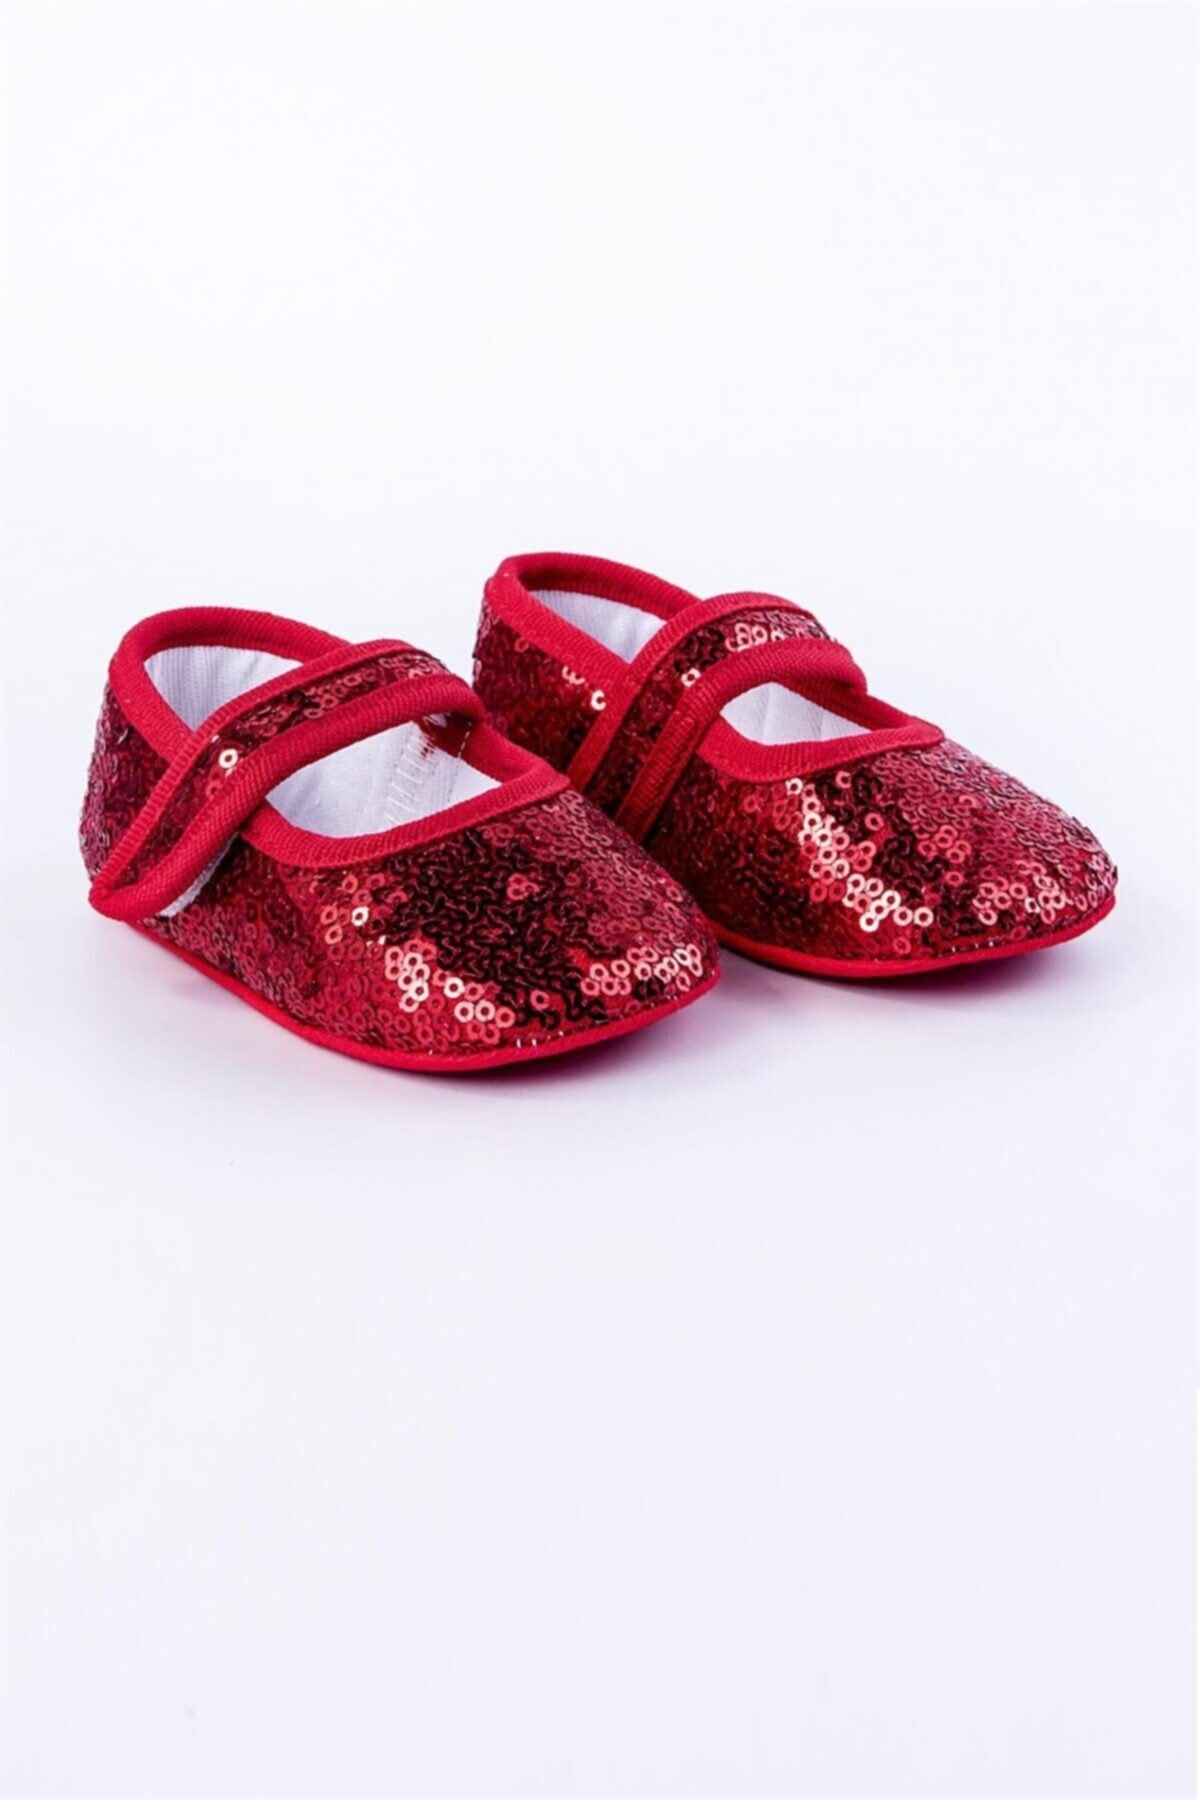 Flaneur Baby Girl Red Sequined Booties Shoes 2021 Premium Quality